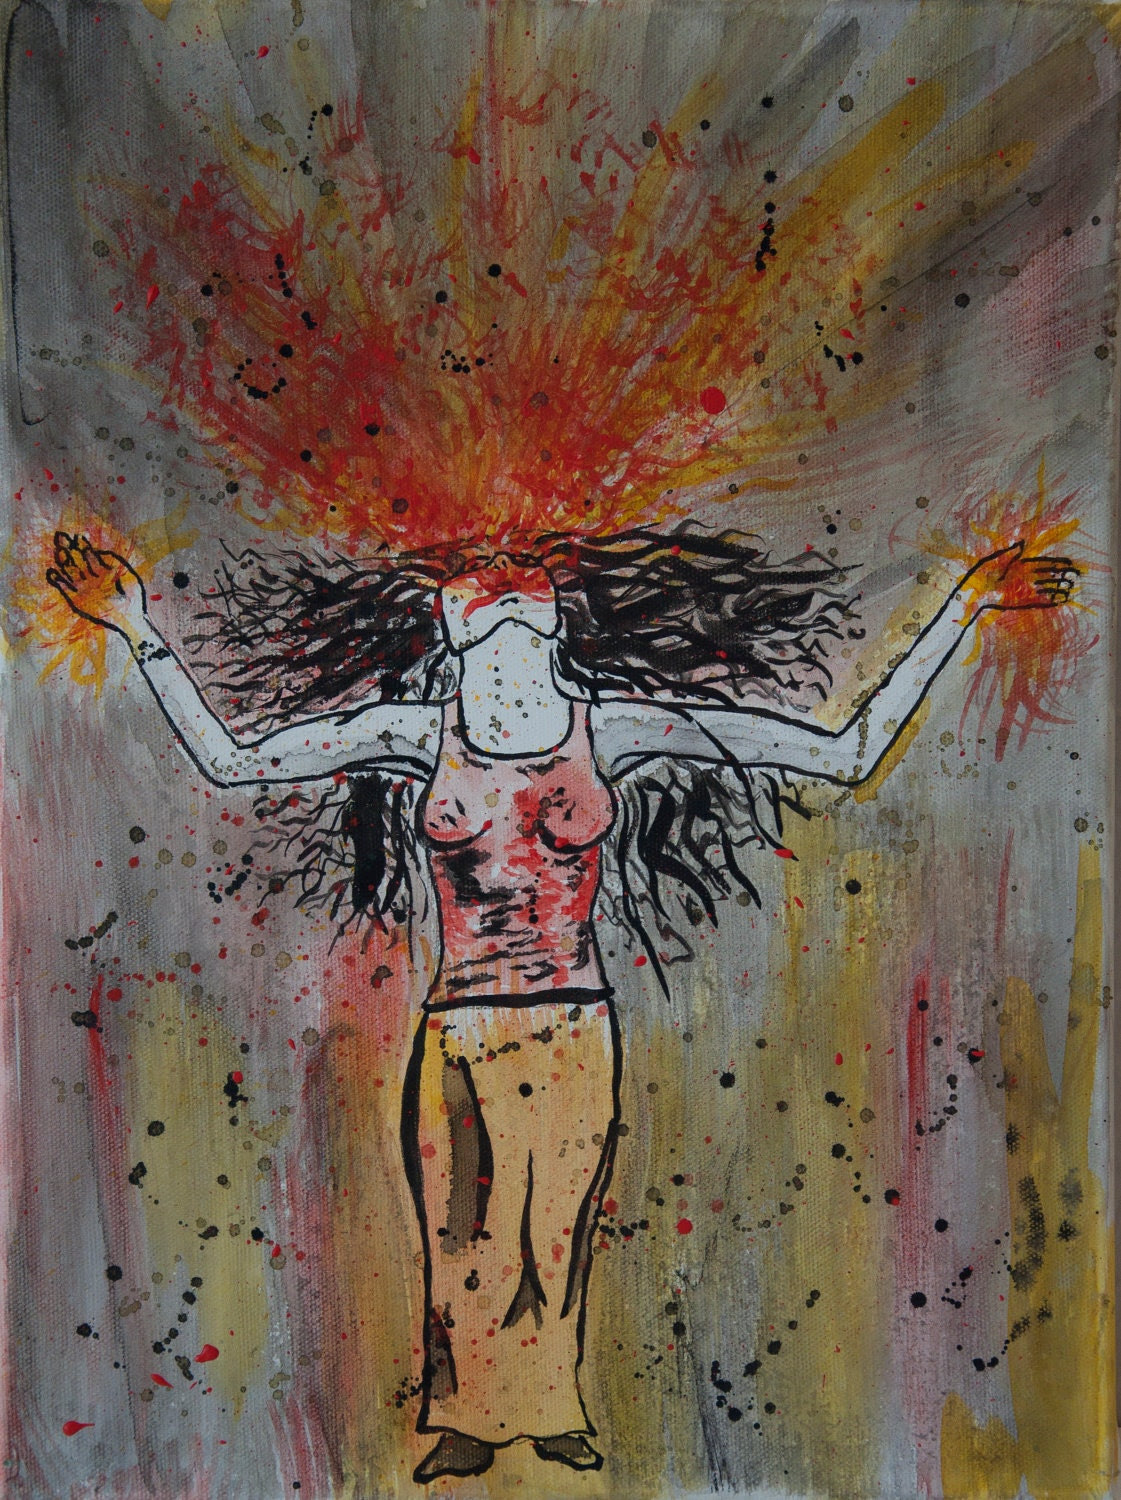 Woman Releasing Anger by screaming Canvas painting